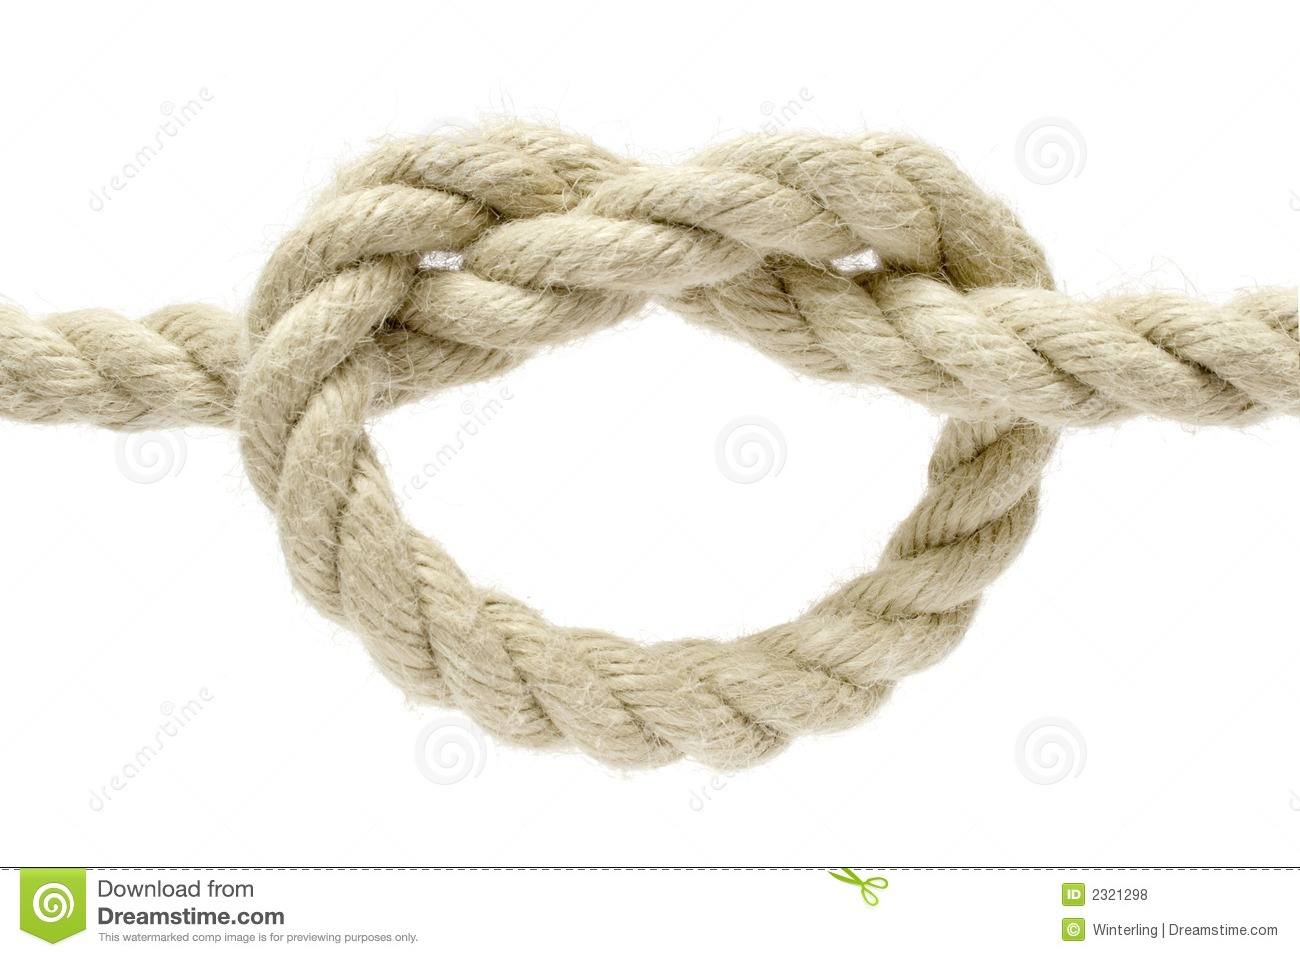 simple knot royalty free stock photos image 2321298 knit clip art knot openclipart